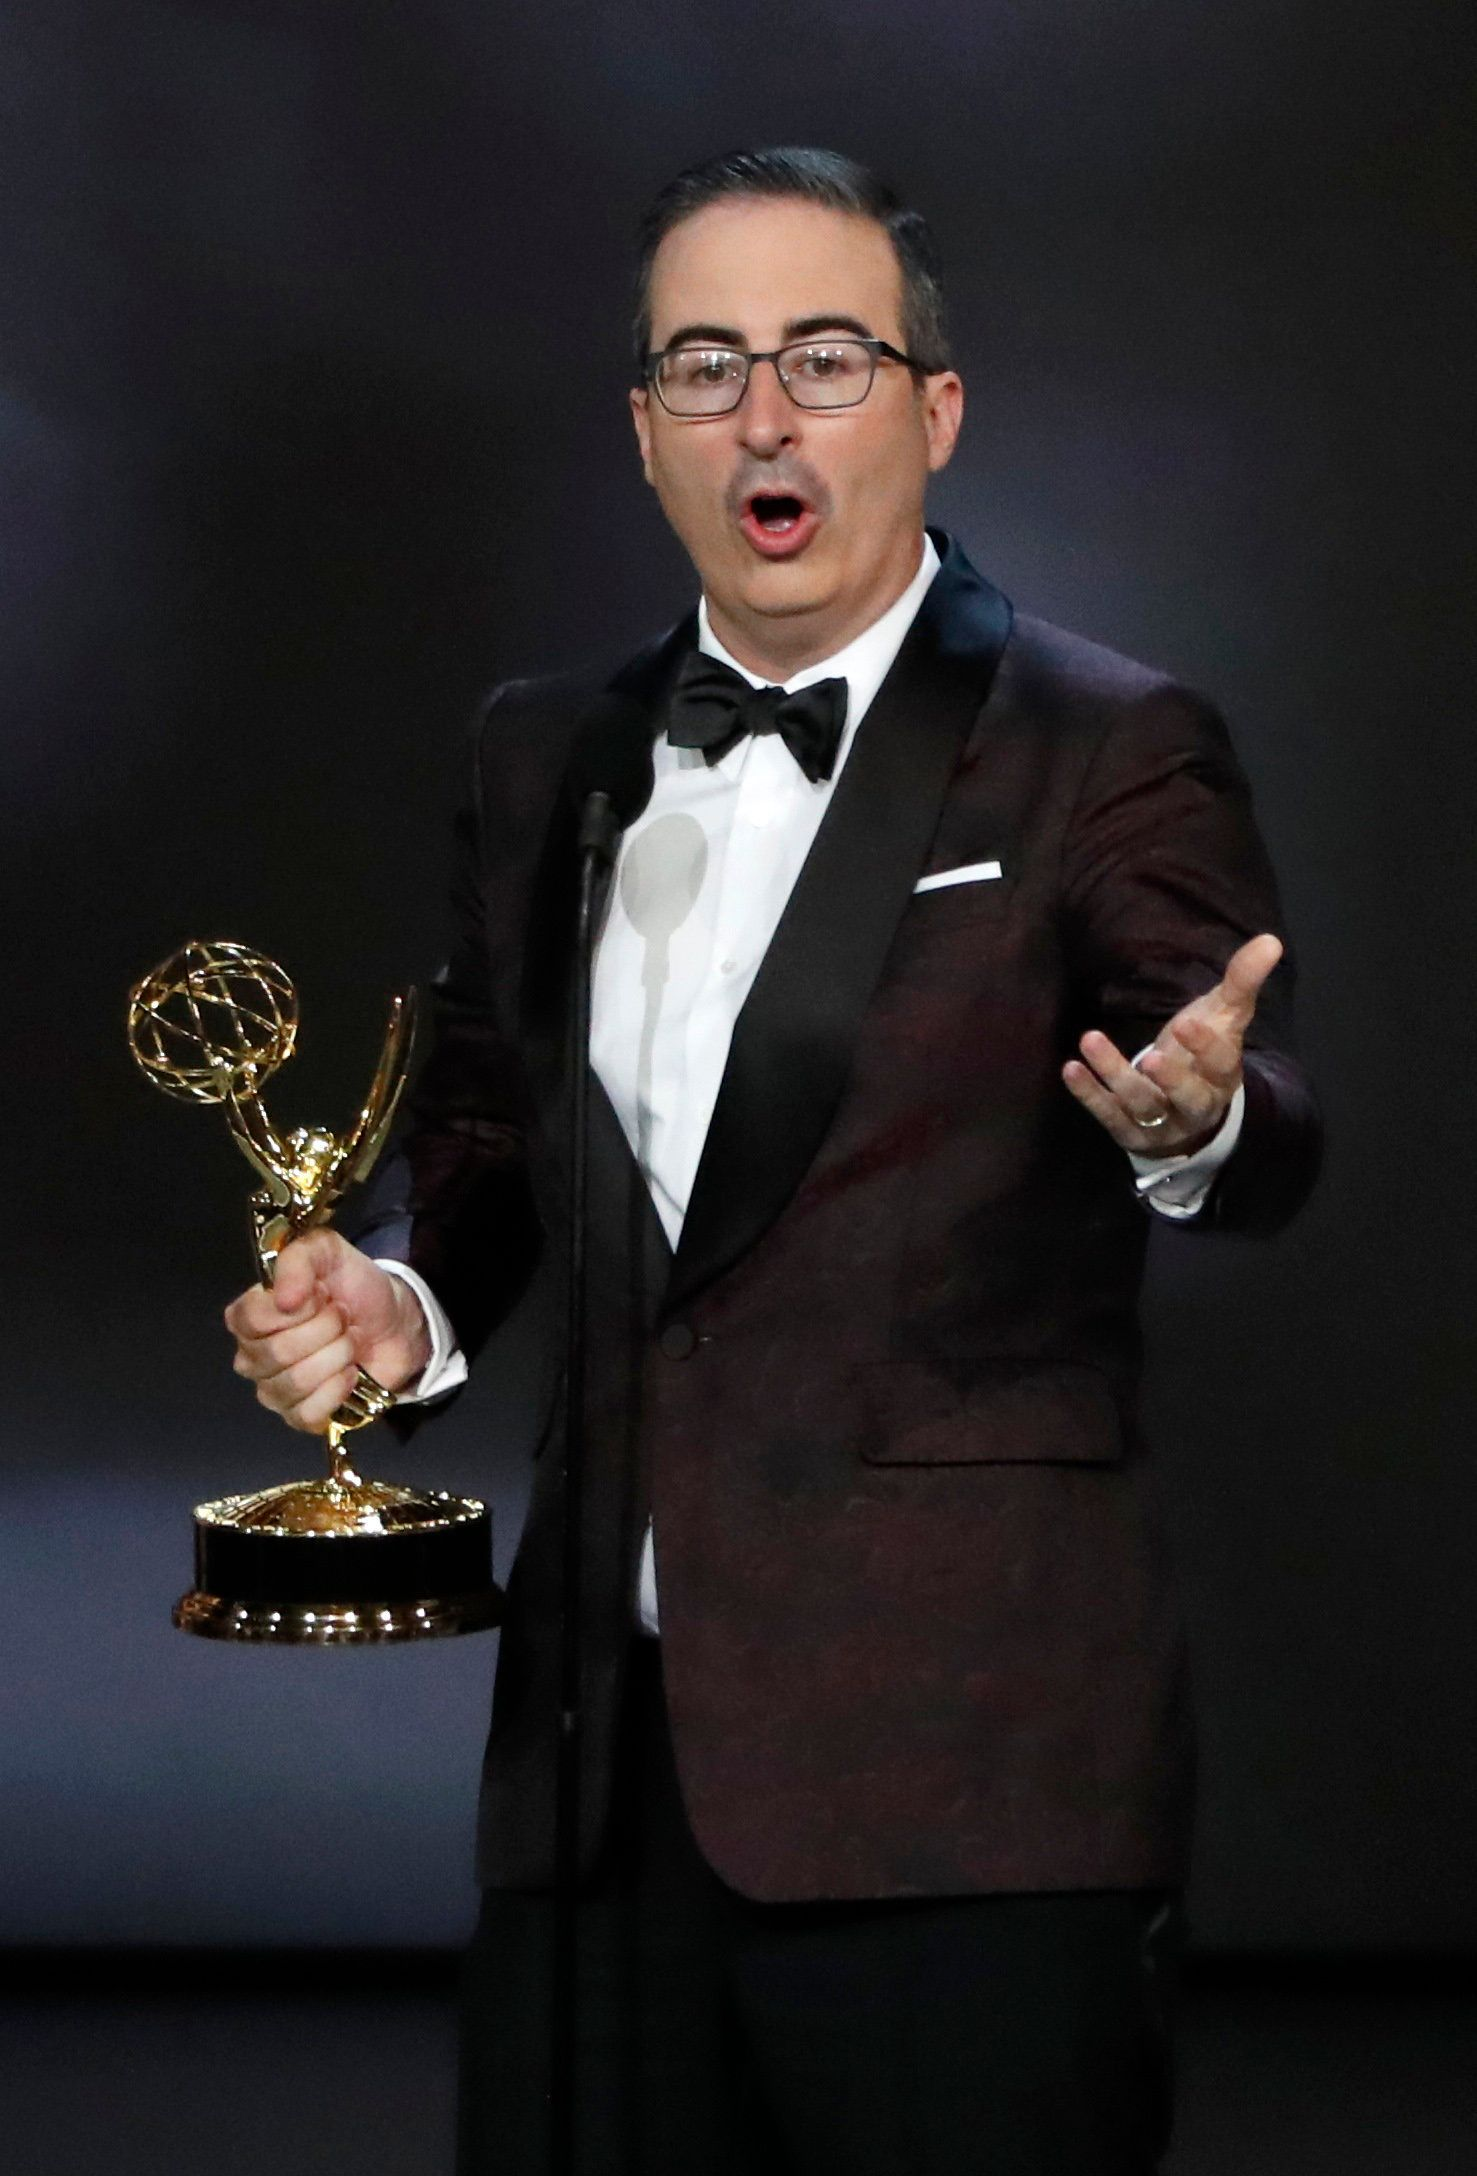 70th Primetime Emmy Awards - Show - Los Angeles, California, U.S., 17/09/2018 - John Oliver for Last Week Tonight with John Oliver wins the Emmy for Outstanding Variety Talk series. REUTERS/Mario Anzuoni